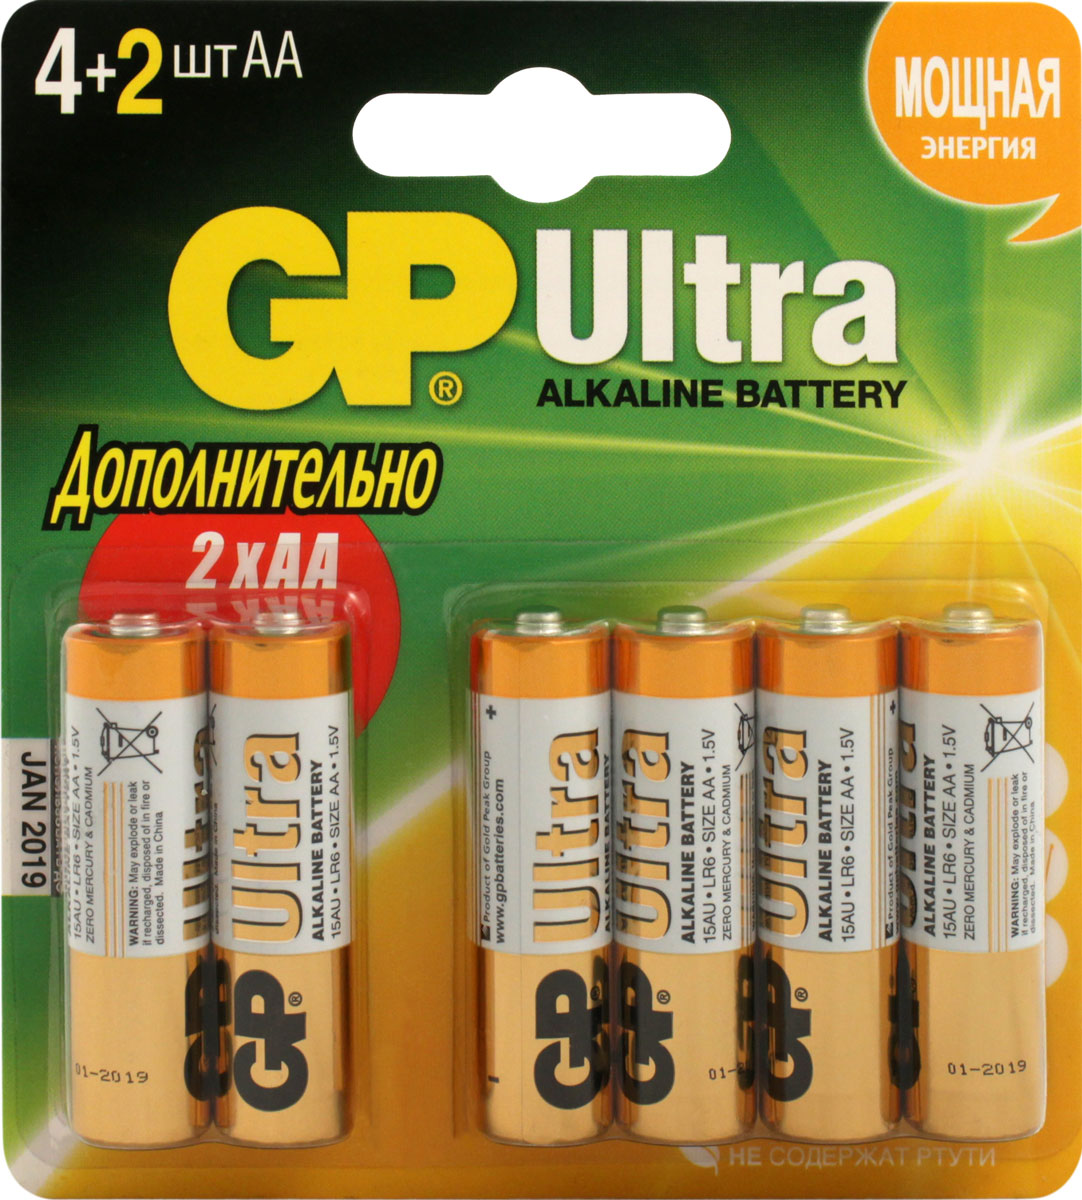 Набор алкалиновых батареек GP Batteries Ultra Alkaline, тип АА, 6 шт ag8 lr55 1 55v alkaline cell button batteries 10 piece pack